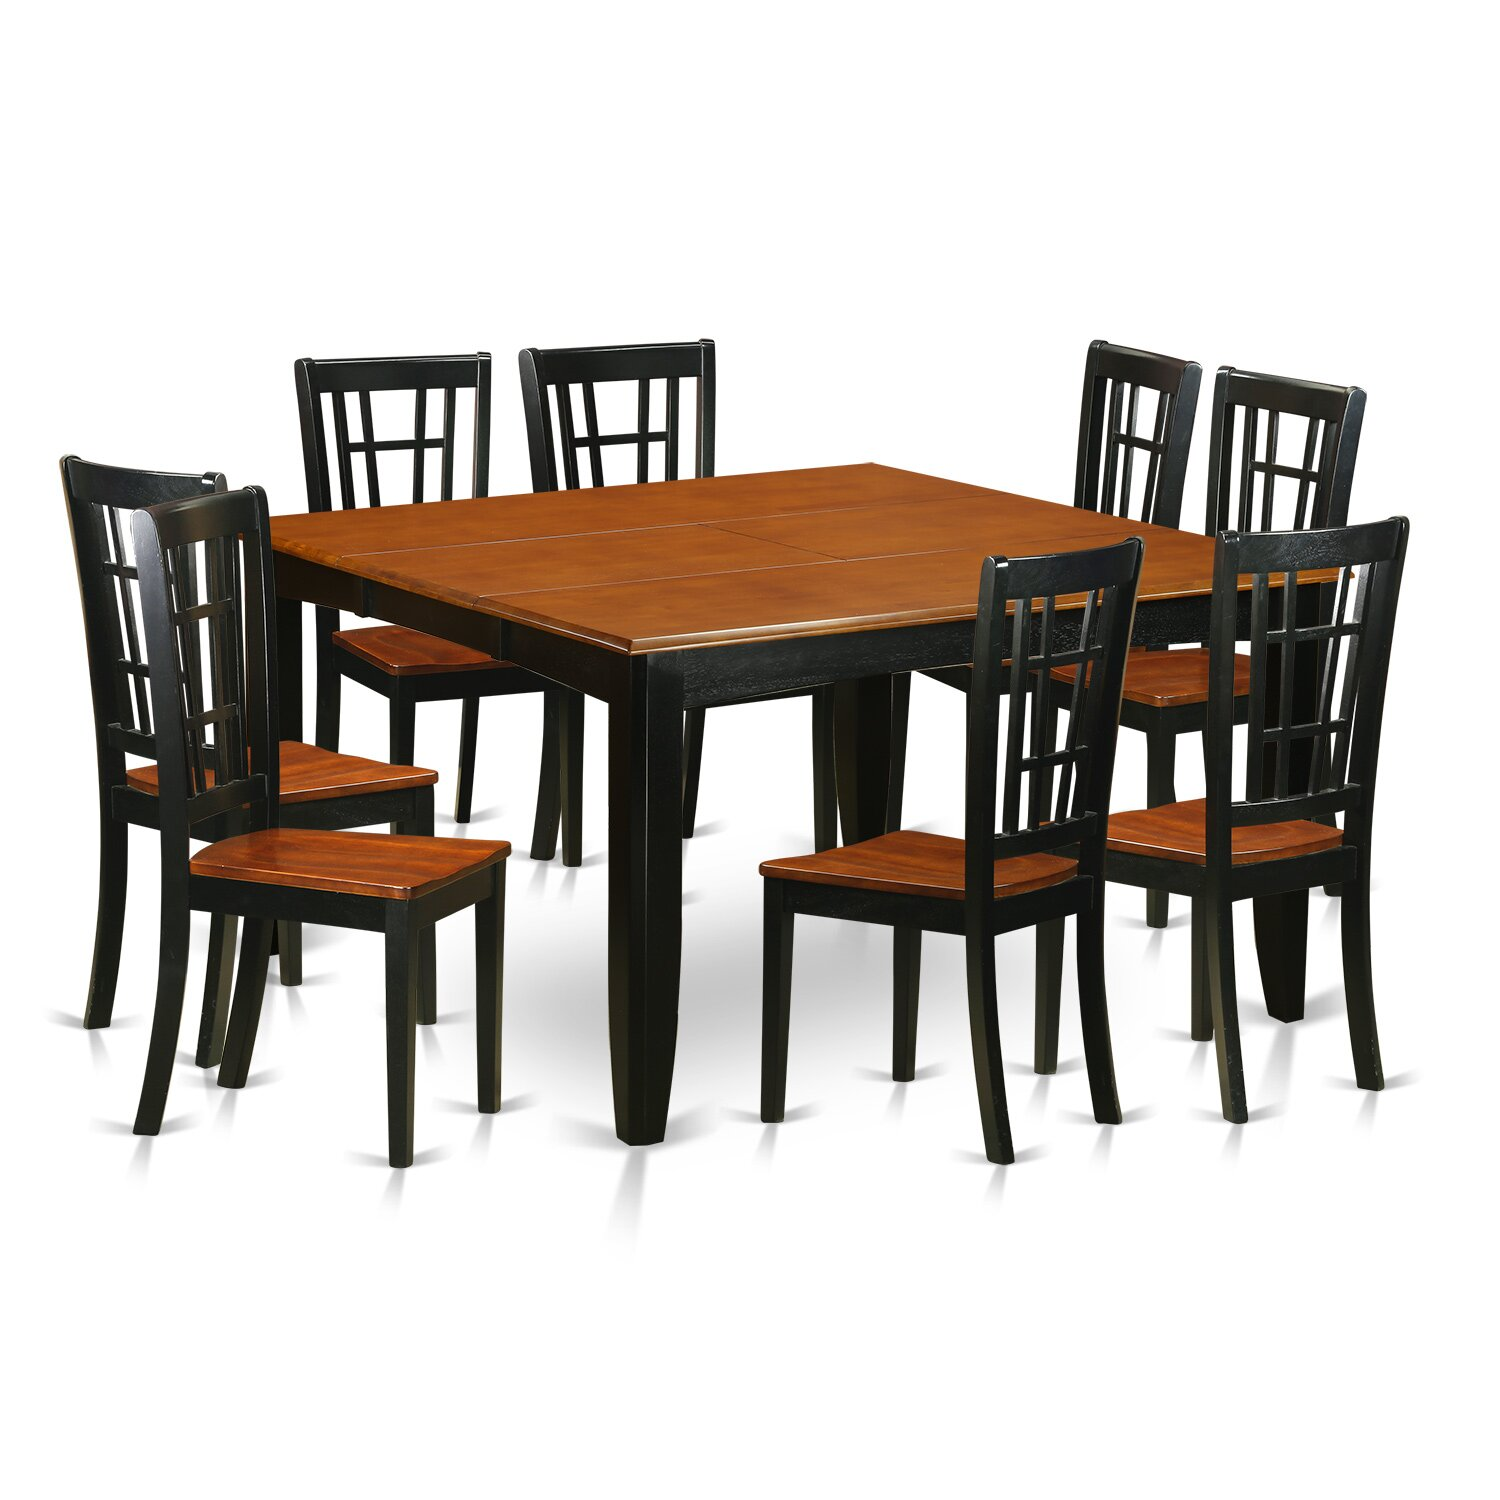 East West Parfait 9 Piece Dining Set